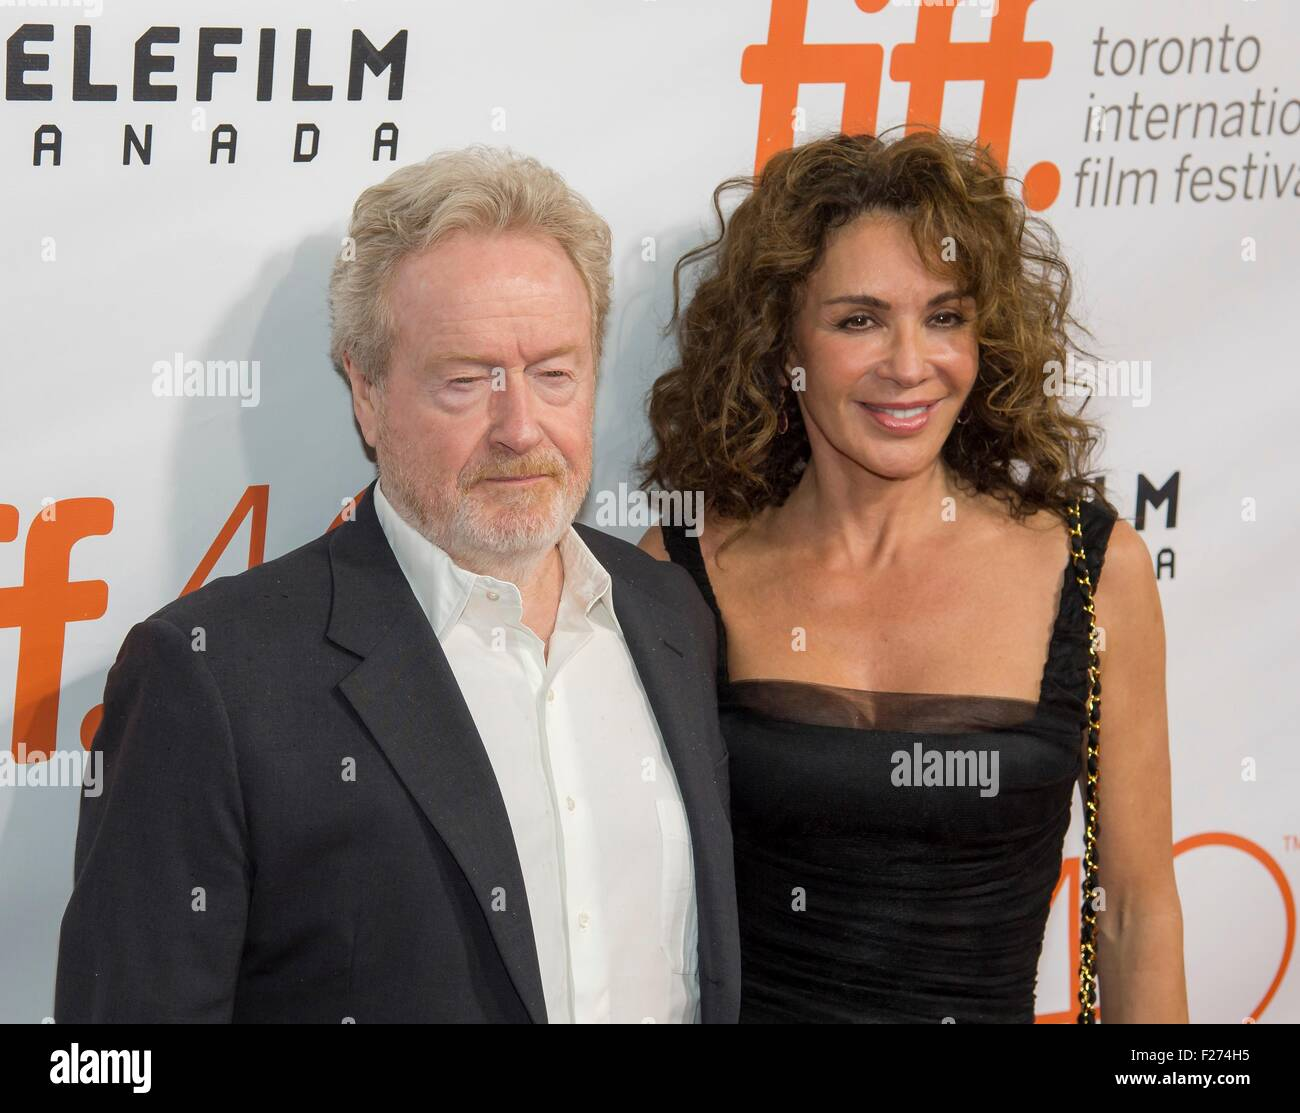 Director Ridley Scott and his wife Gianina Facio attend the world premiere for The Martian at the Toronto International - Stock Image